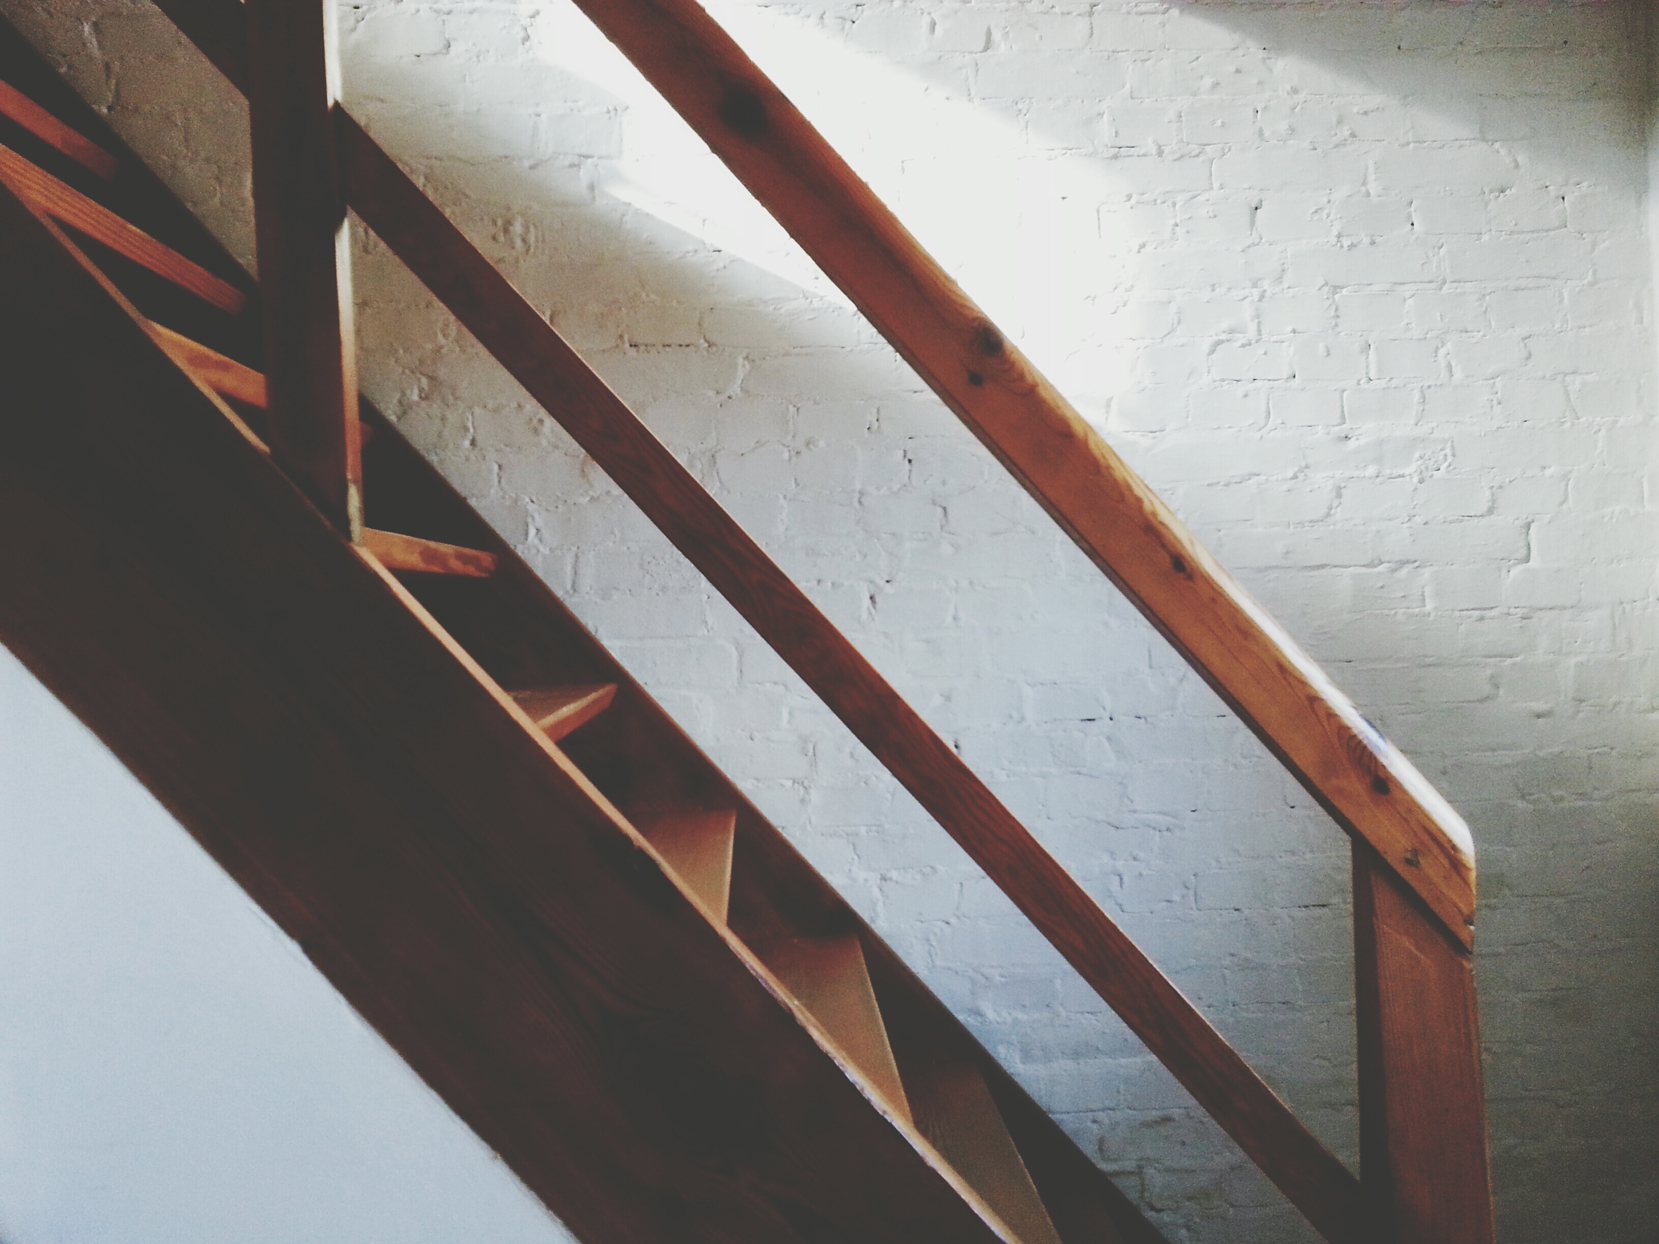 wooden staircase with railing leading to basement